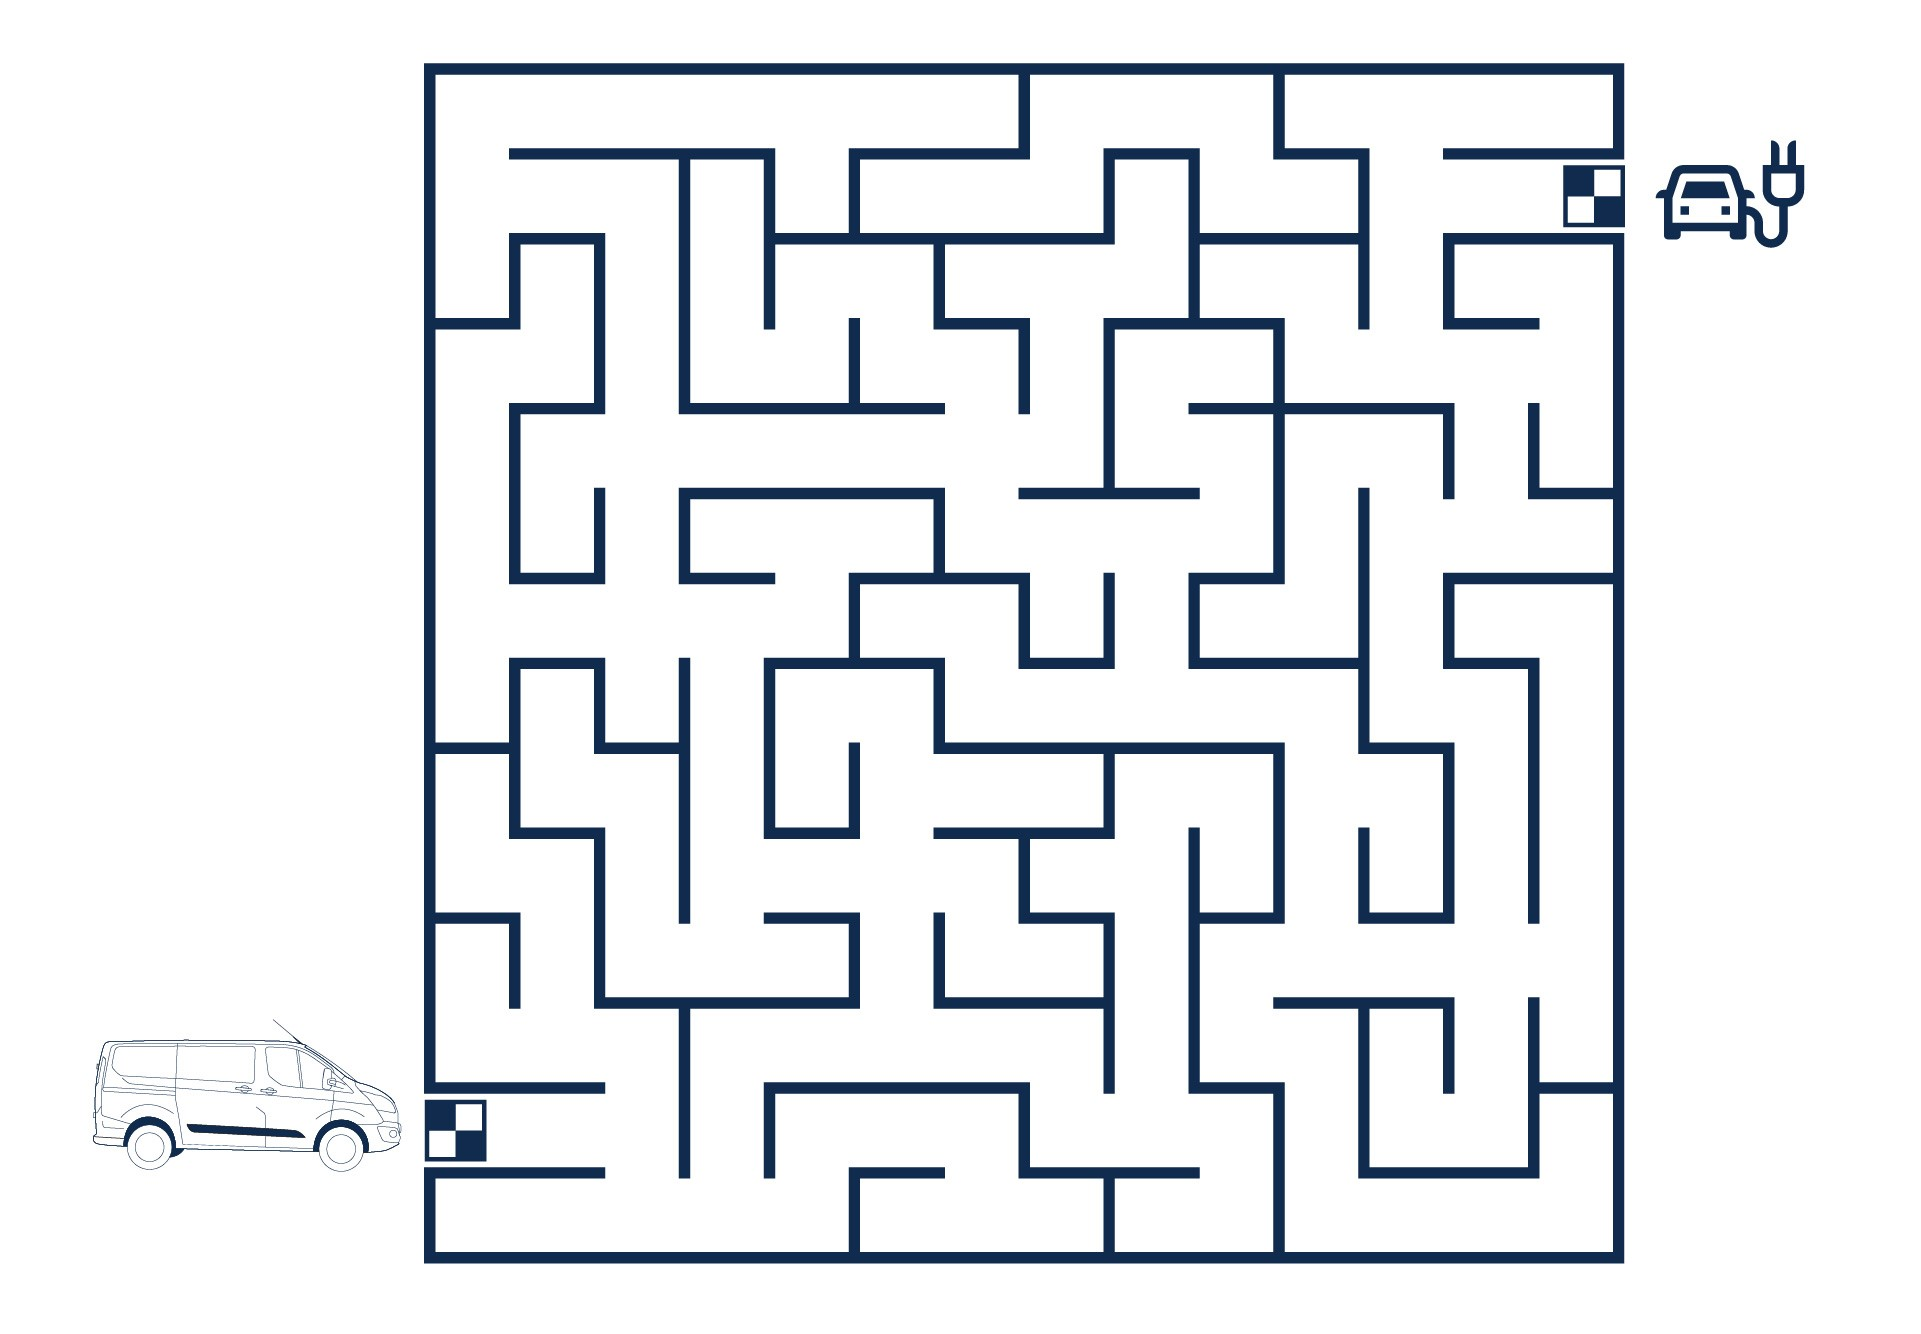 Ford Stay Home maze puzzle hard